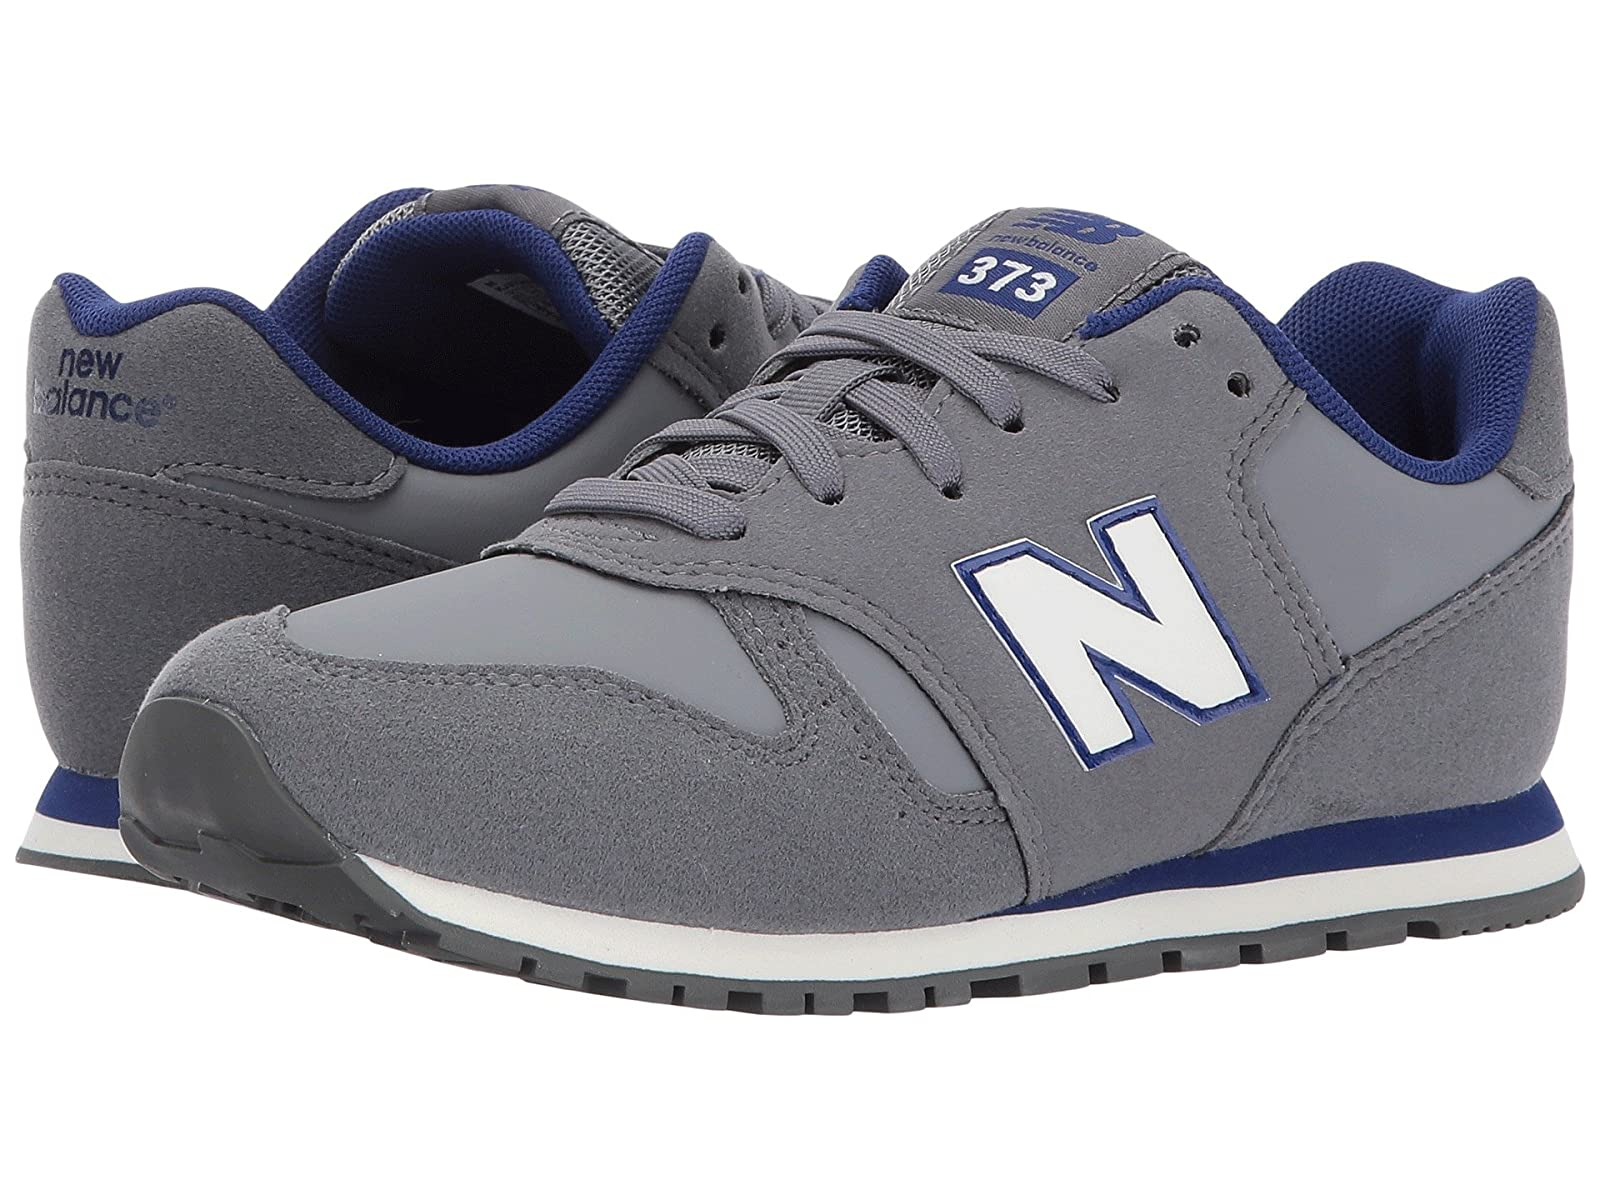 New Balance Kids KJ373 (Little Kid/Big Kid)Cheap and distinctive eye-catching shoes